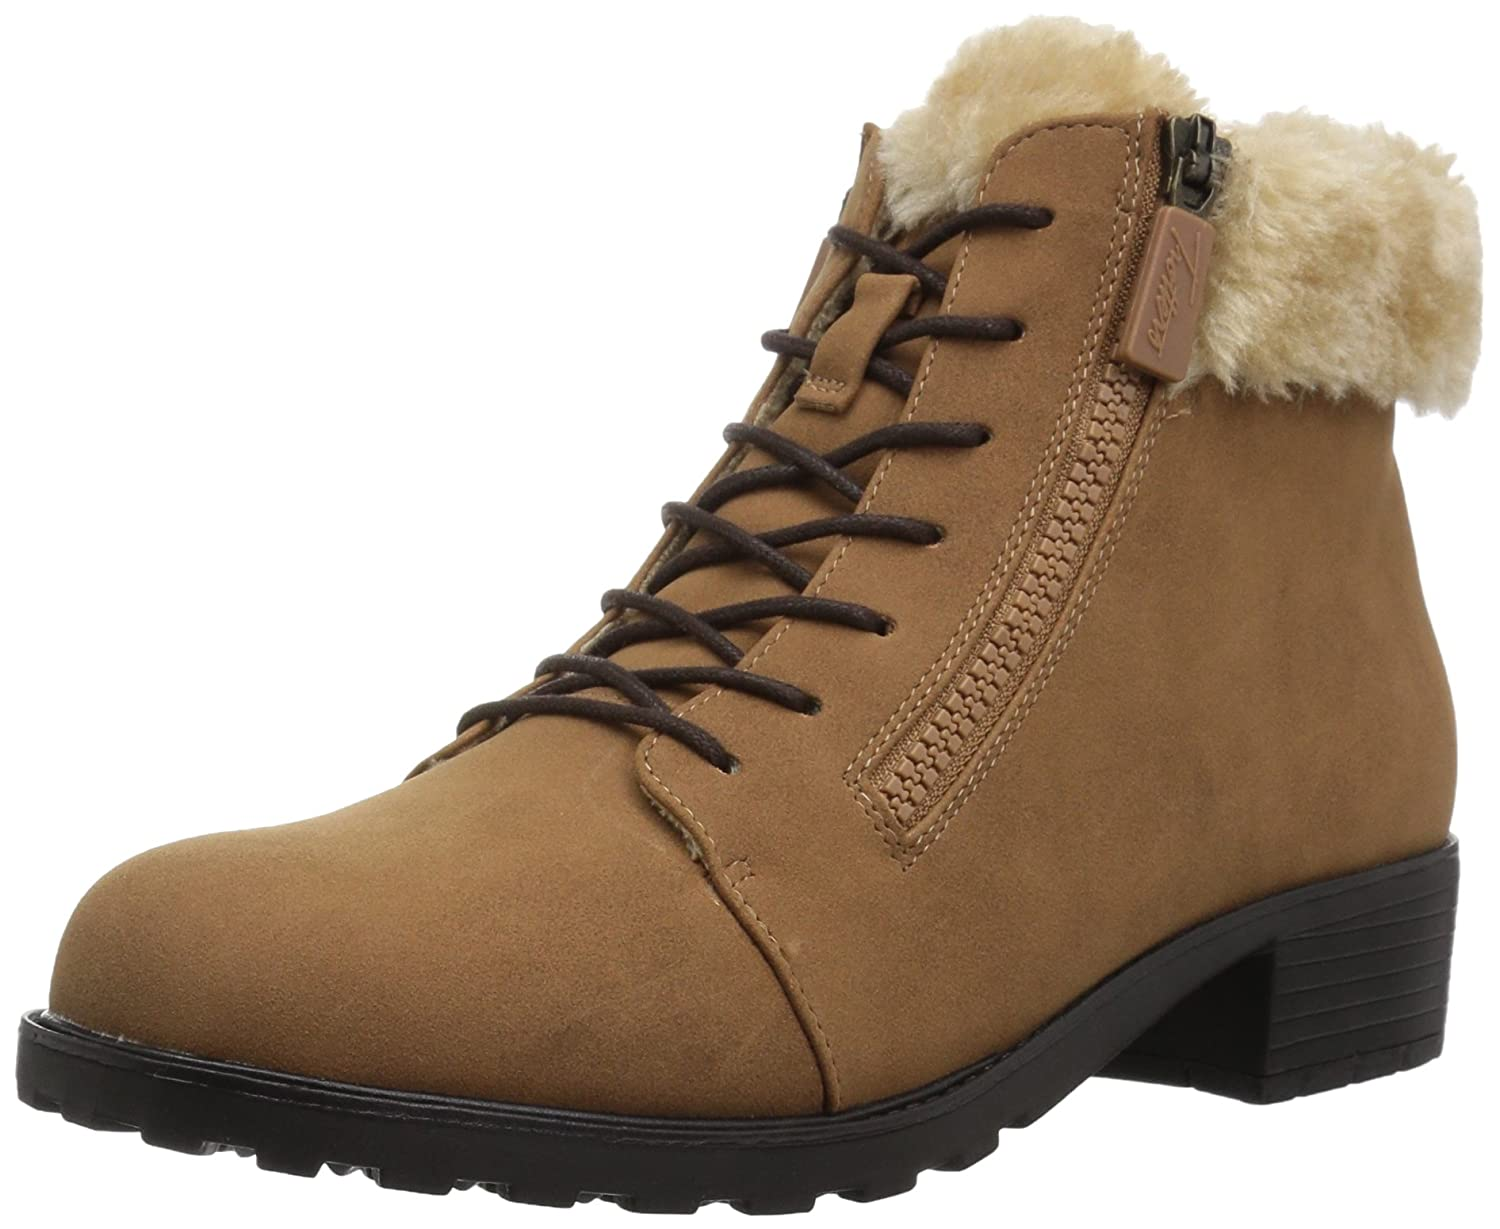 Trotters Women's Below Zero Ankle Bootie B01N2VUTYK 6 2W US|Chestnut/Natural